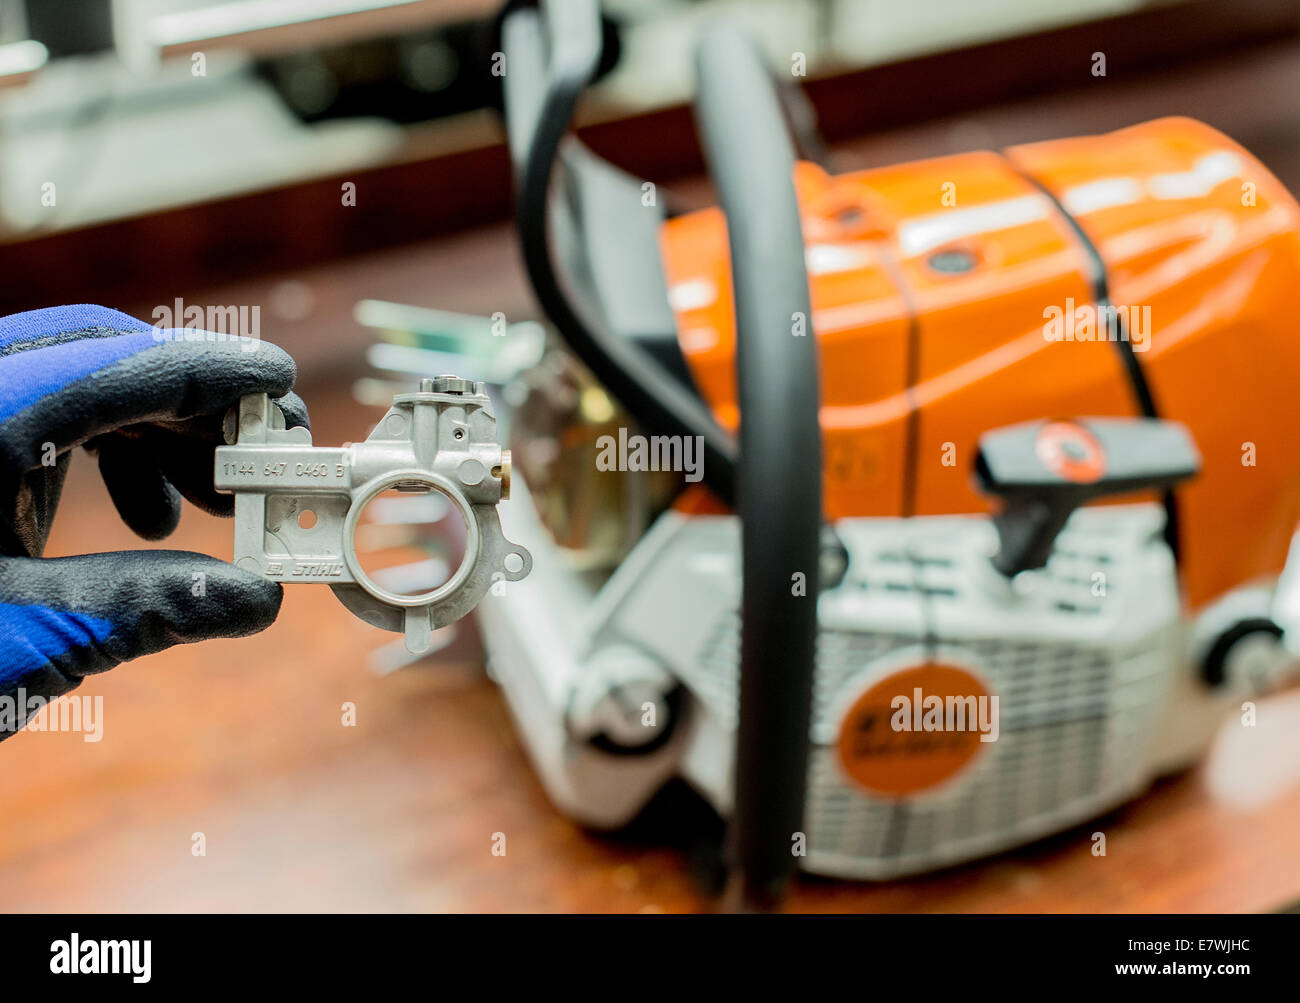 Waiblingen germany 24th sep 2014 an employee of chainsaw an employee of chainsaw producer stihl shows a pump to put sticking oil onto the chain of a chainsaw in waiblingen germany 24 september 2014 keyboard keysfo Choice Image